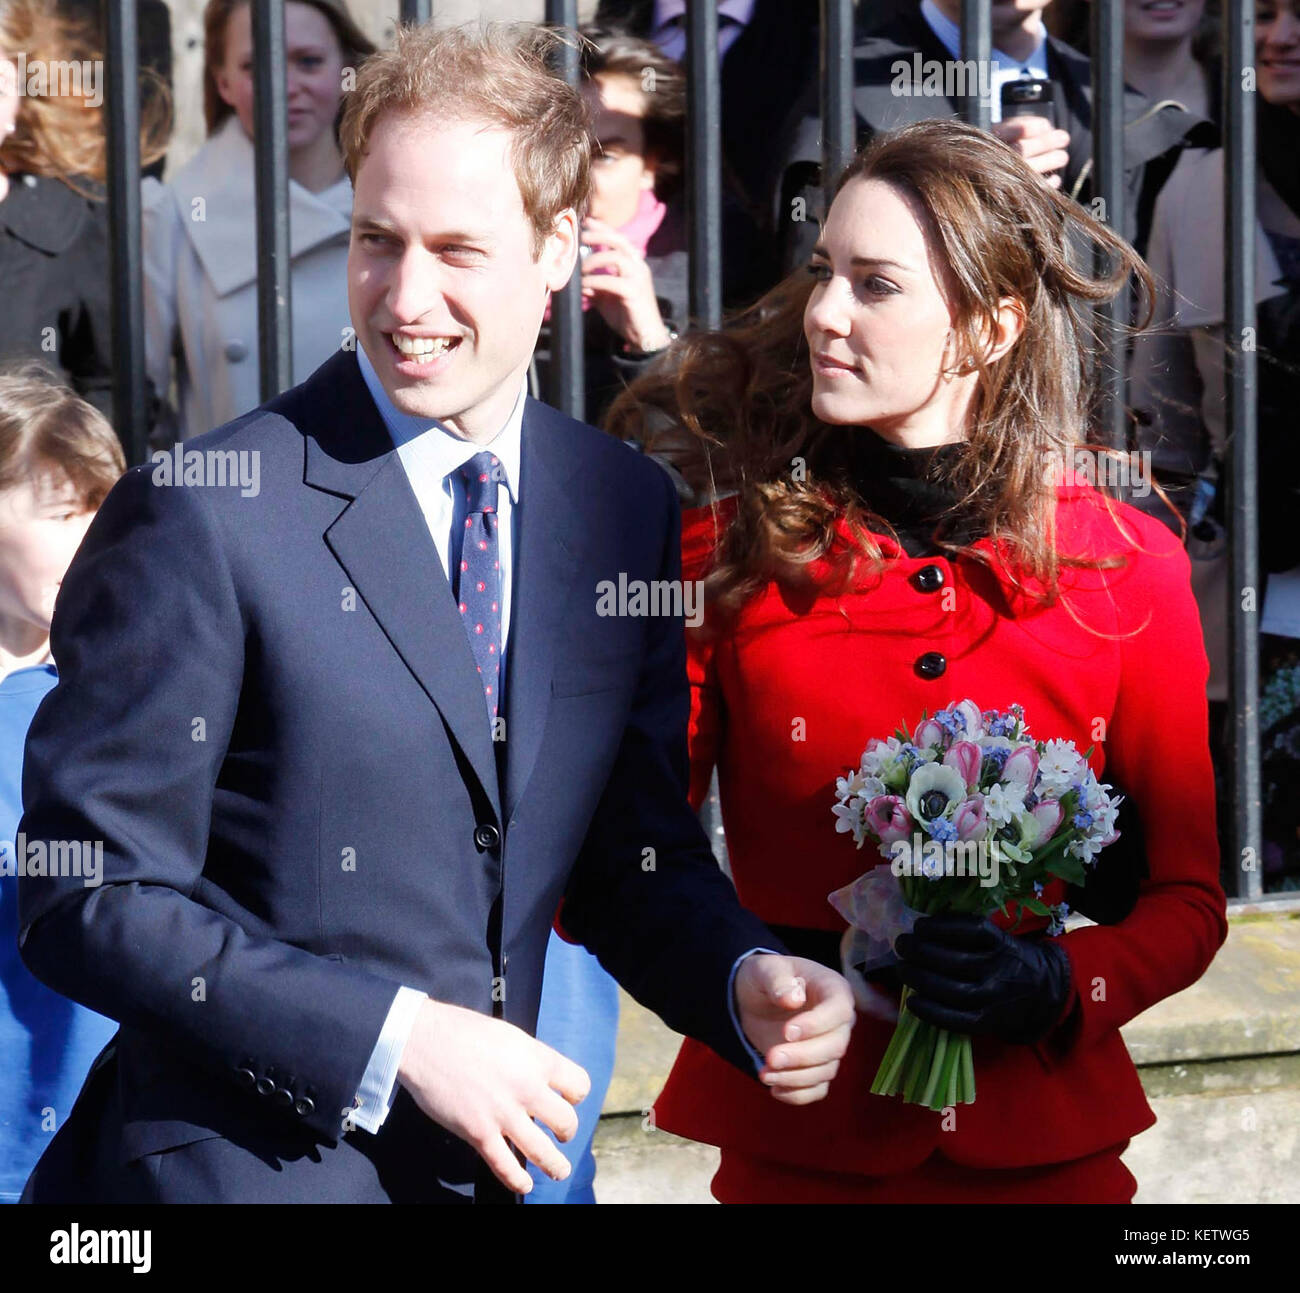 prince william and kate middleton latest news